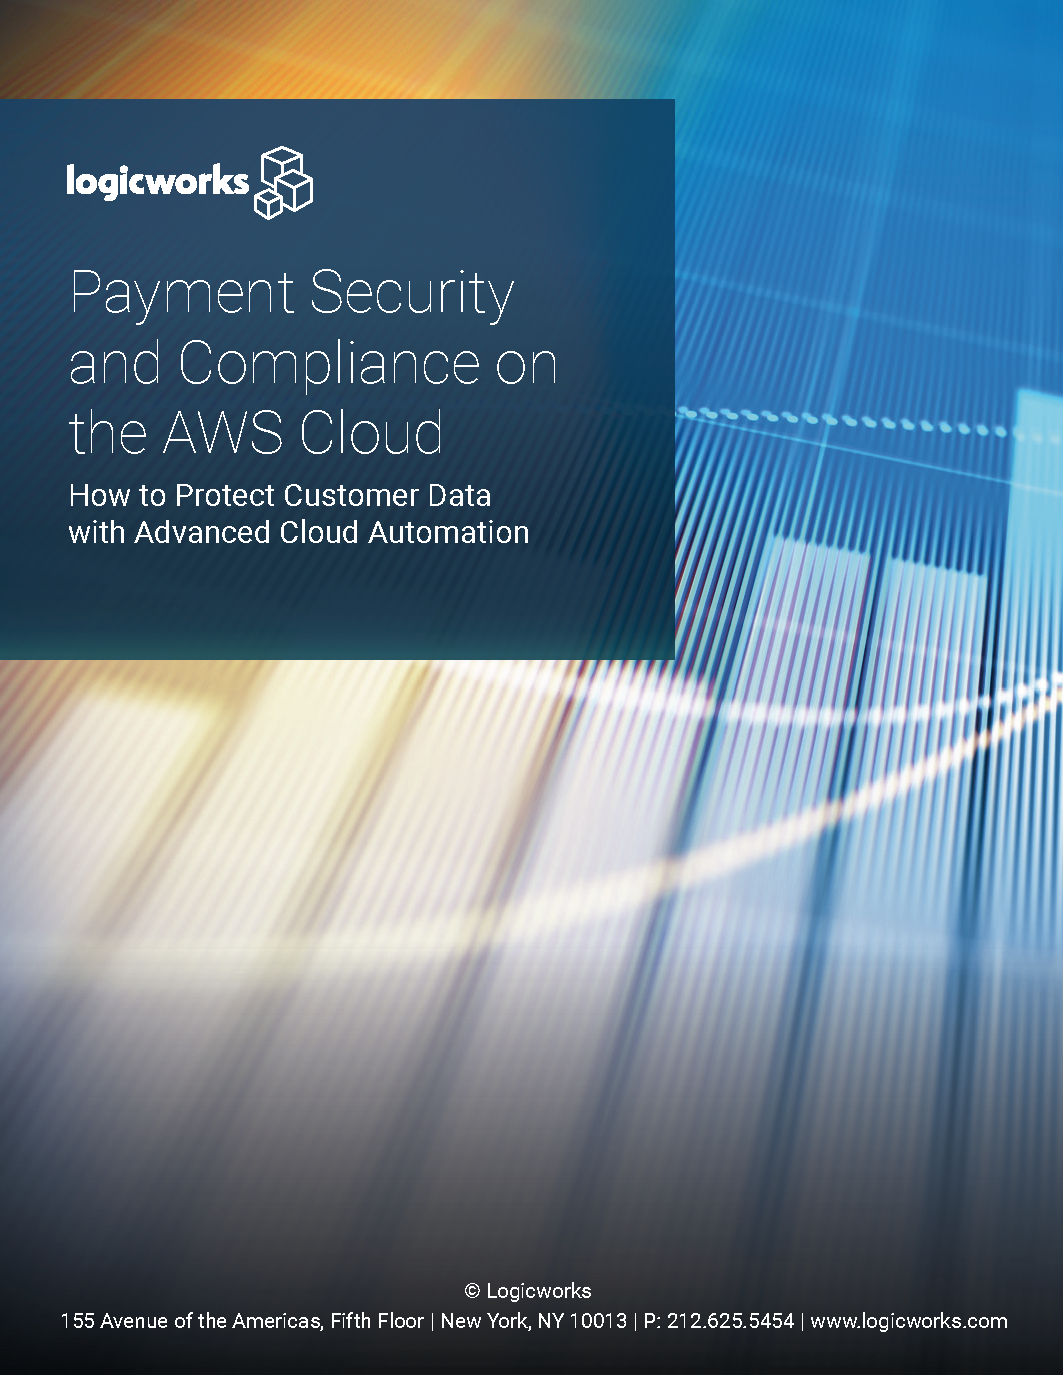 Logicworks eBook - Payment Security & Compliance on AWS